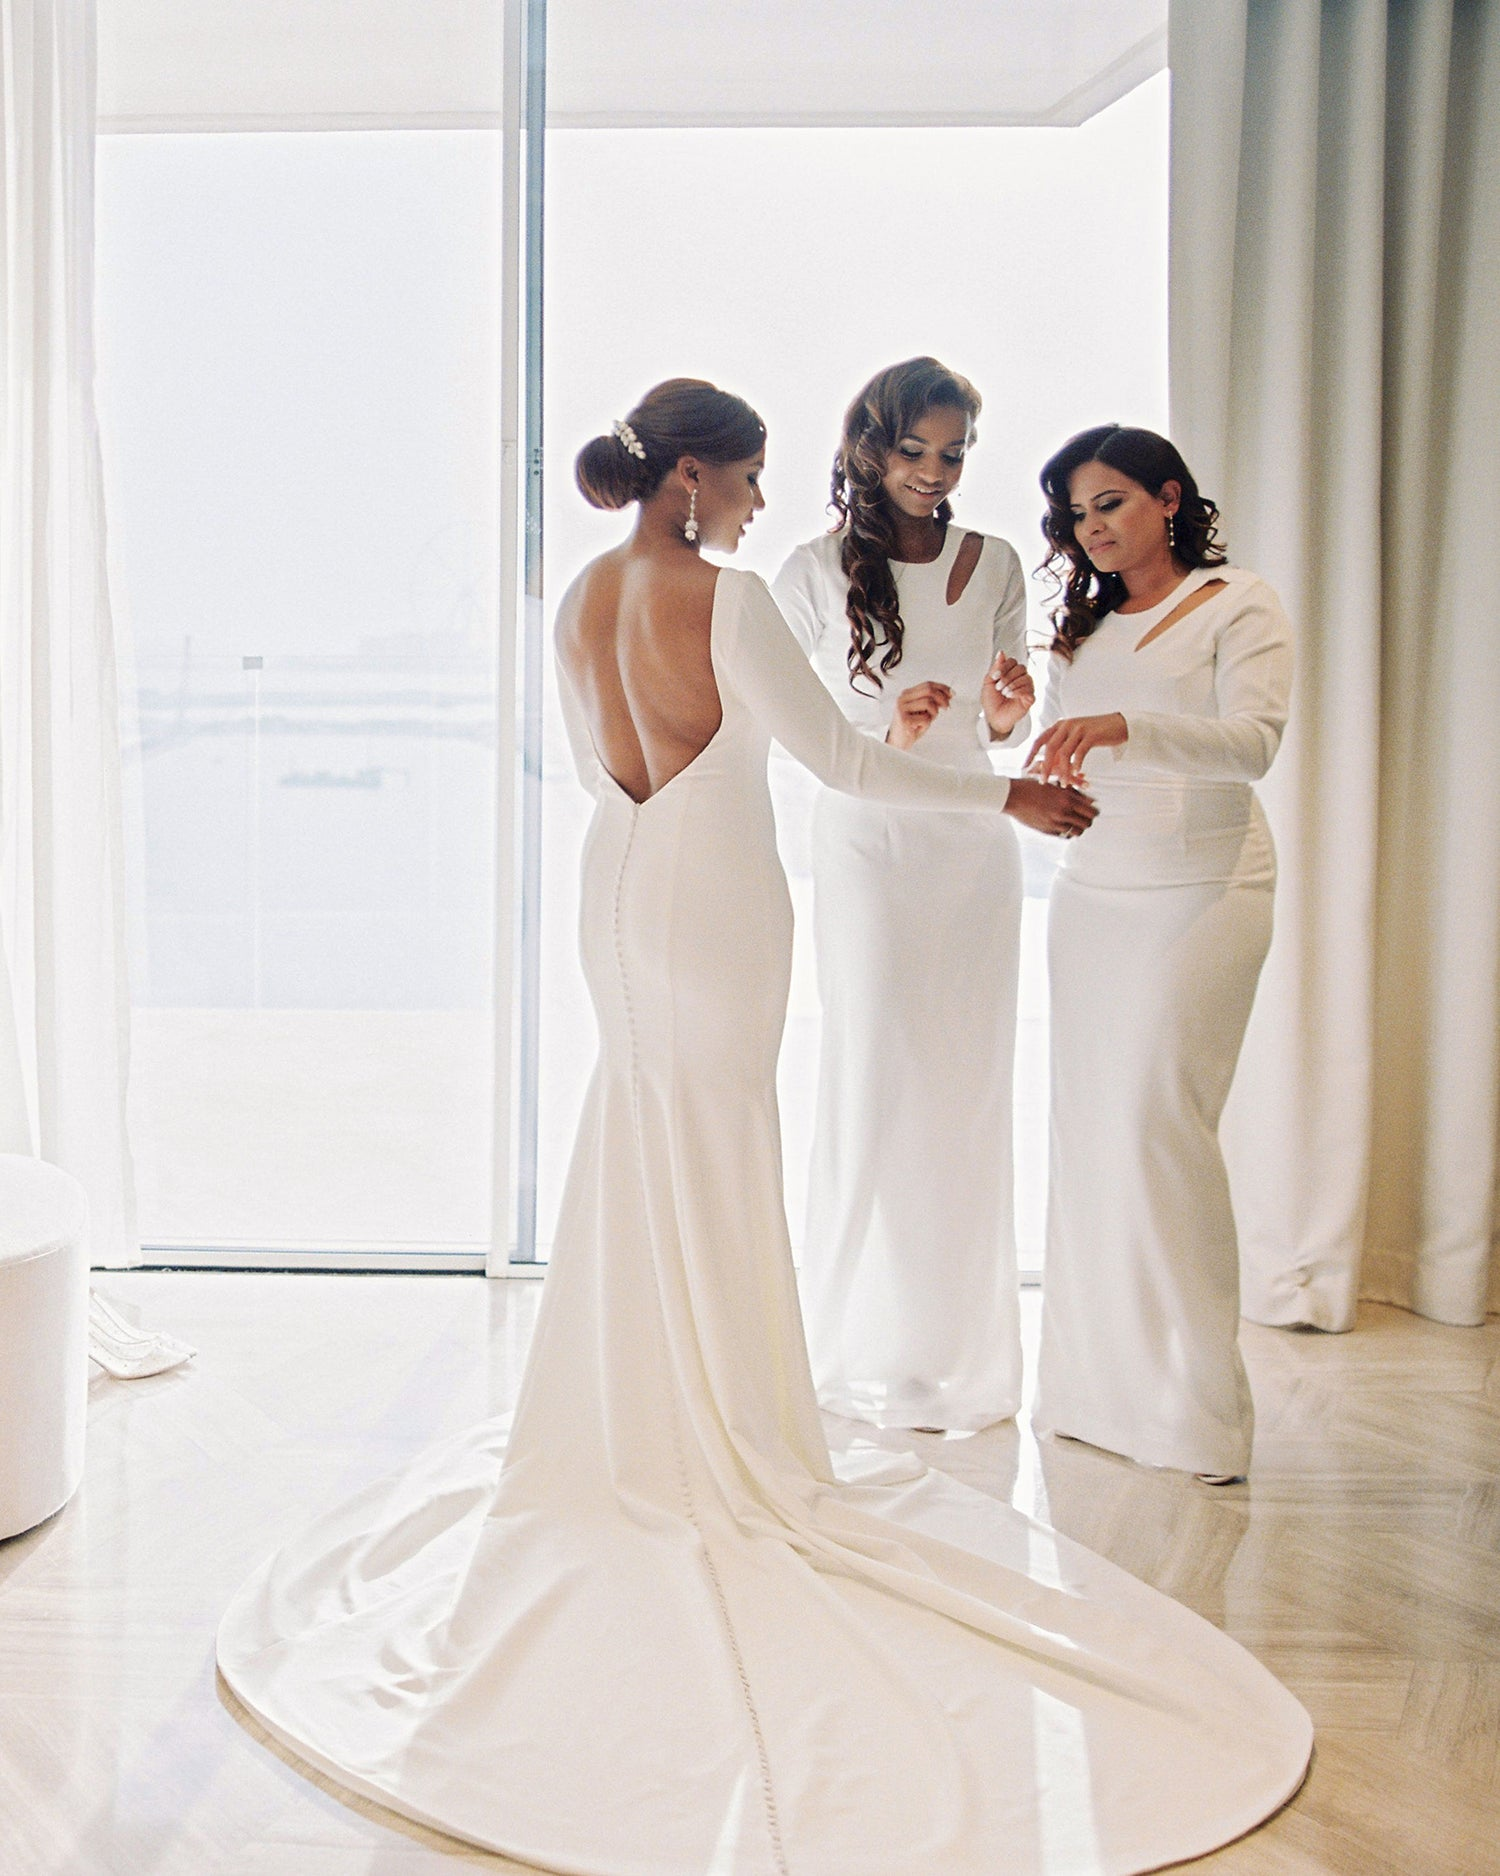 bella belle real brides vanessa getting ready with bridesmaids dubai wedding